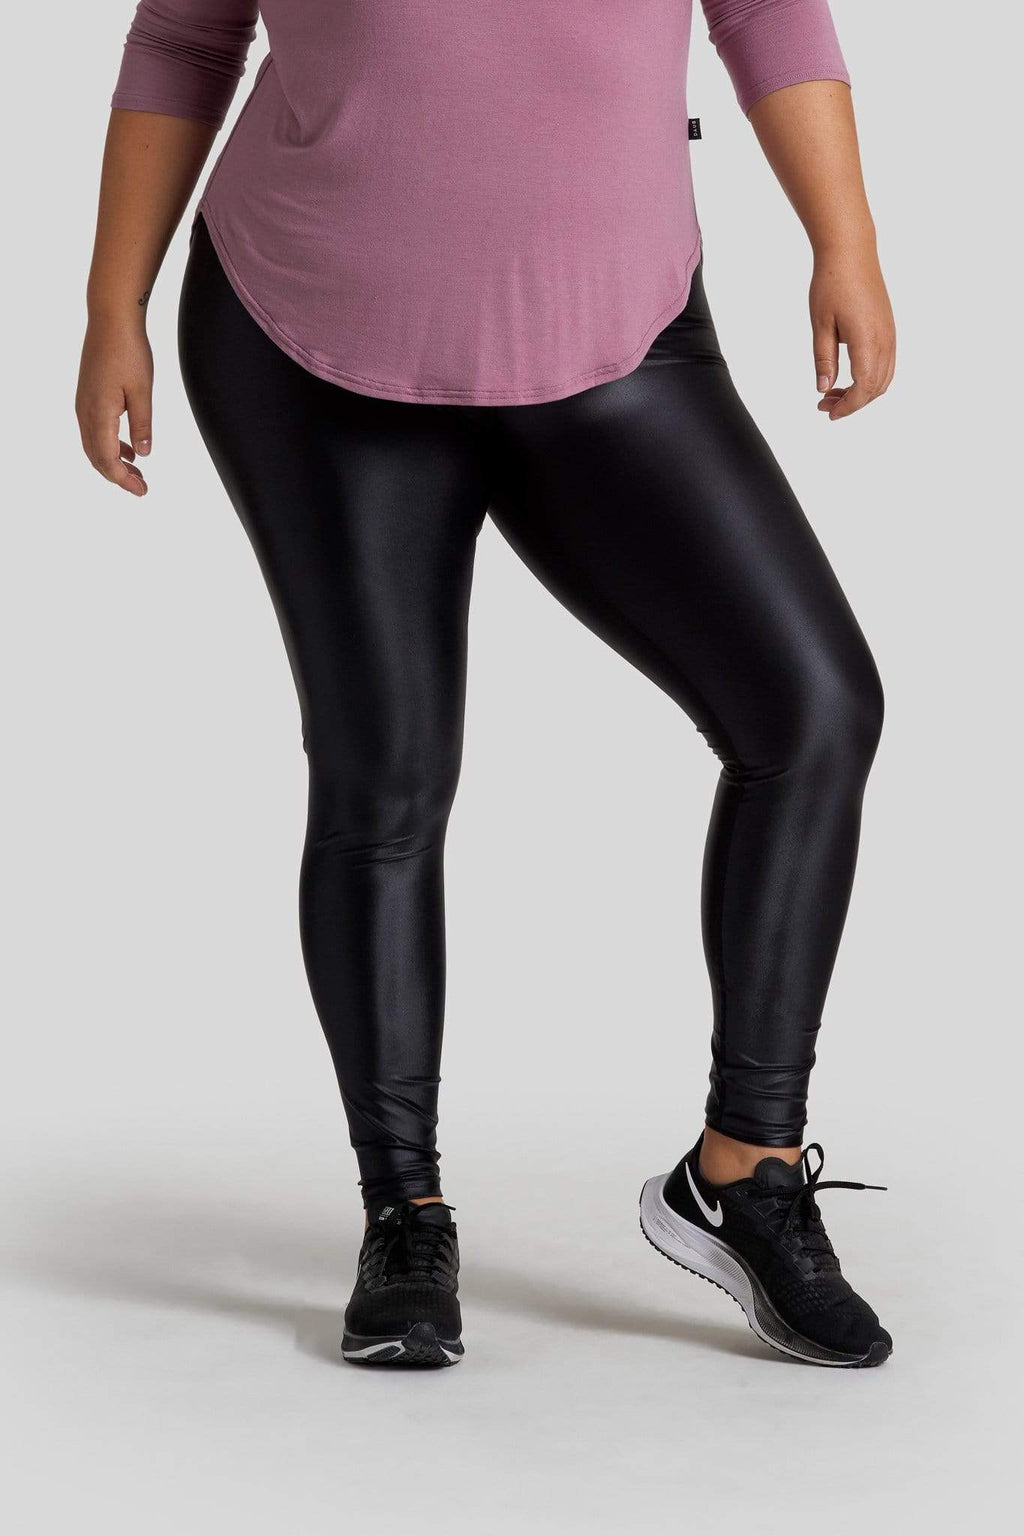 A woman's legs are shown wearing liquid black leggings